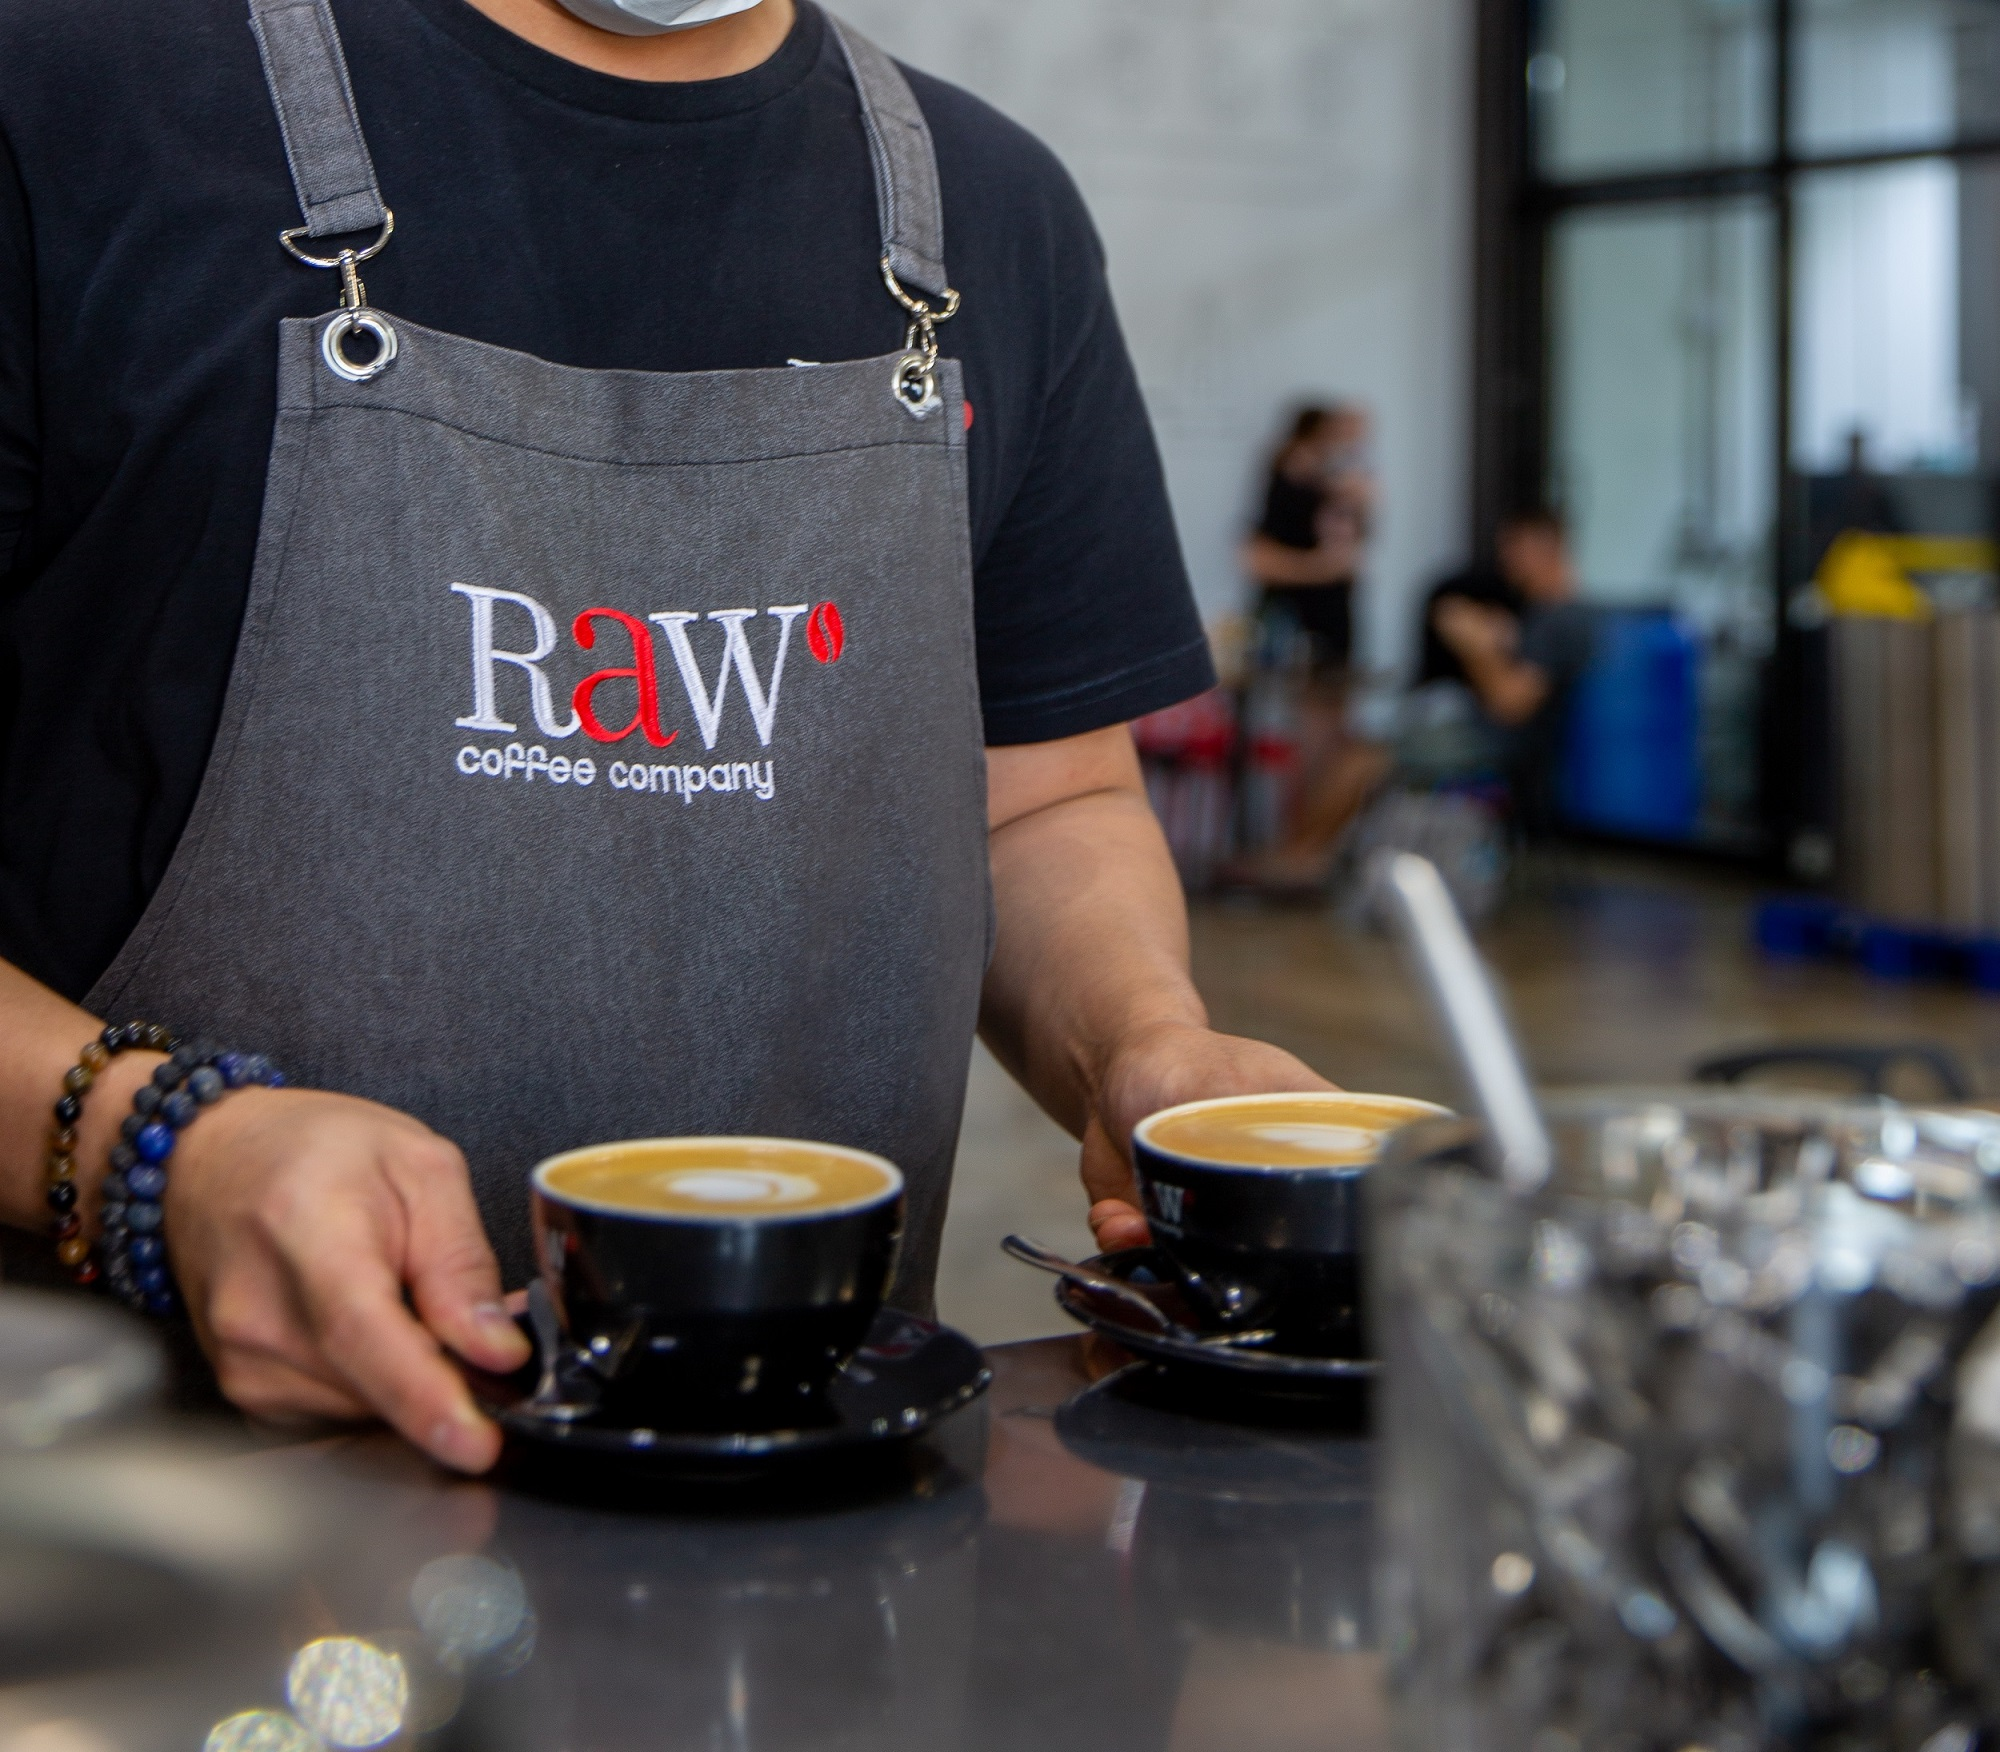 Dubai's Favourite Cup of Specialty, Ethically Sourced Coffee: RAW Coffee